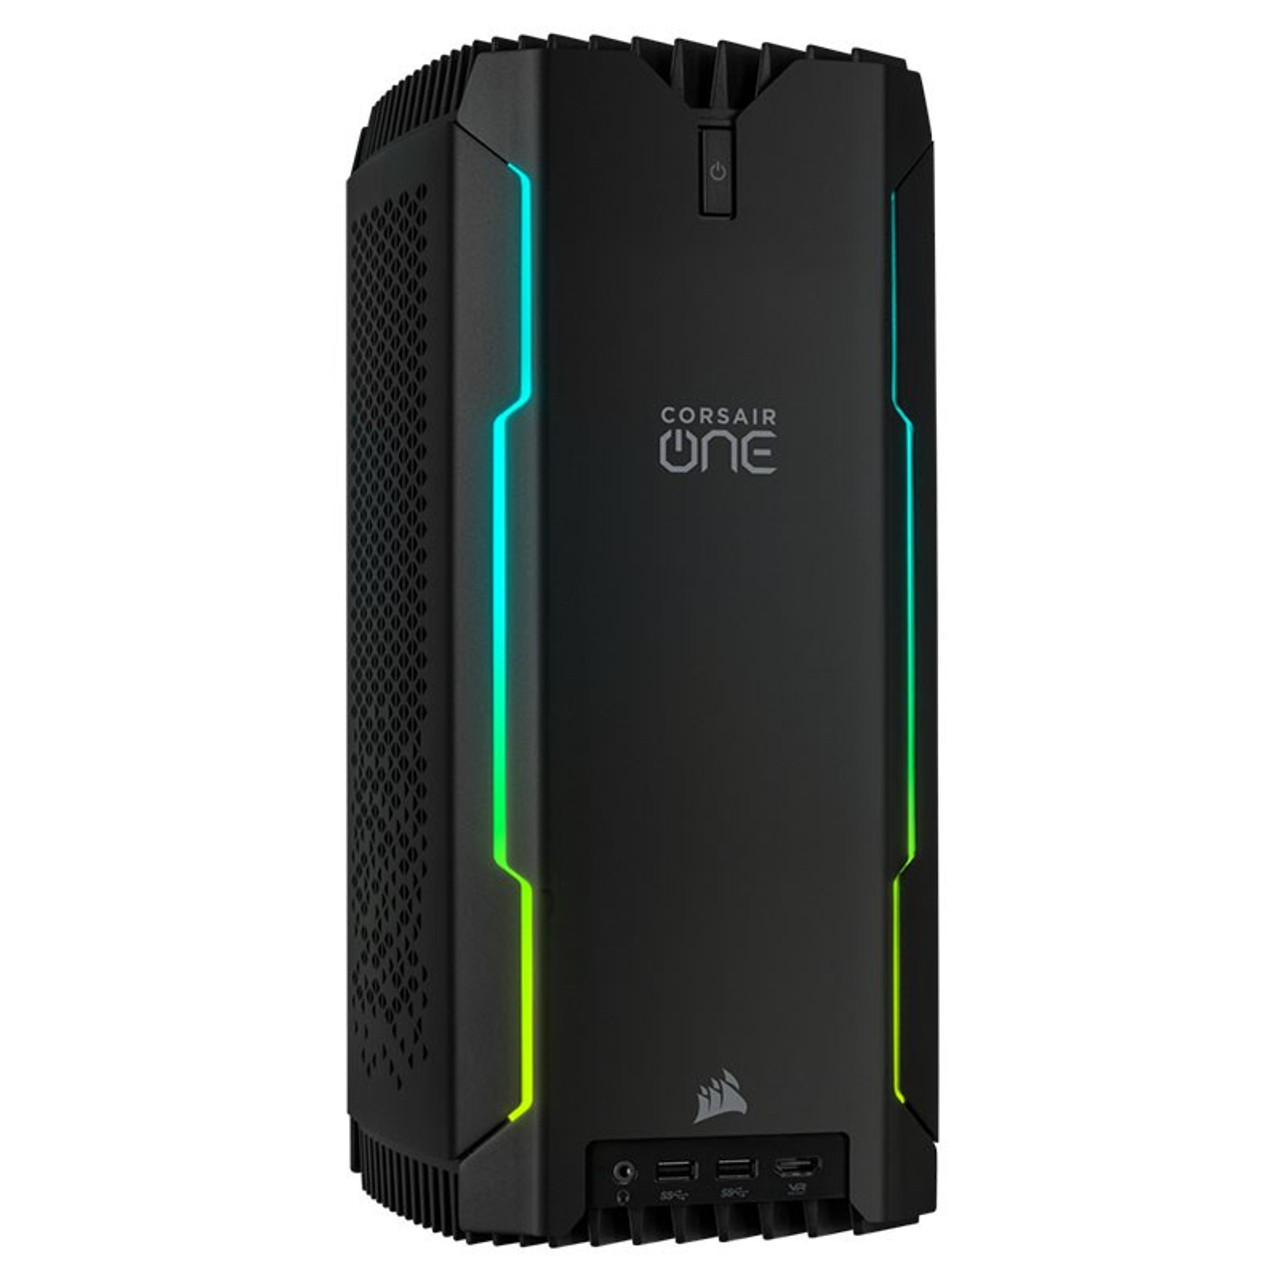 Image for Corsair ONE i145 Gaming PC i7-9700K 32GB 960GB M.2 + 2TB HDD RTX2080 Win10 CX Computer Superstore